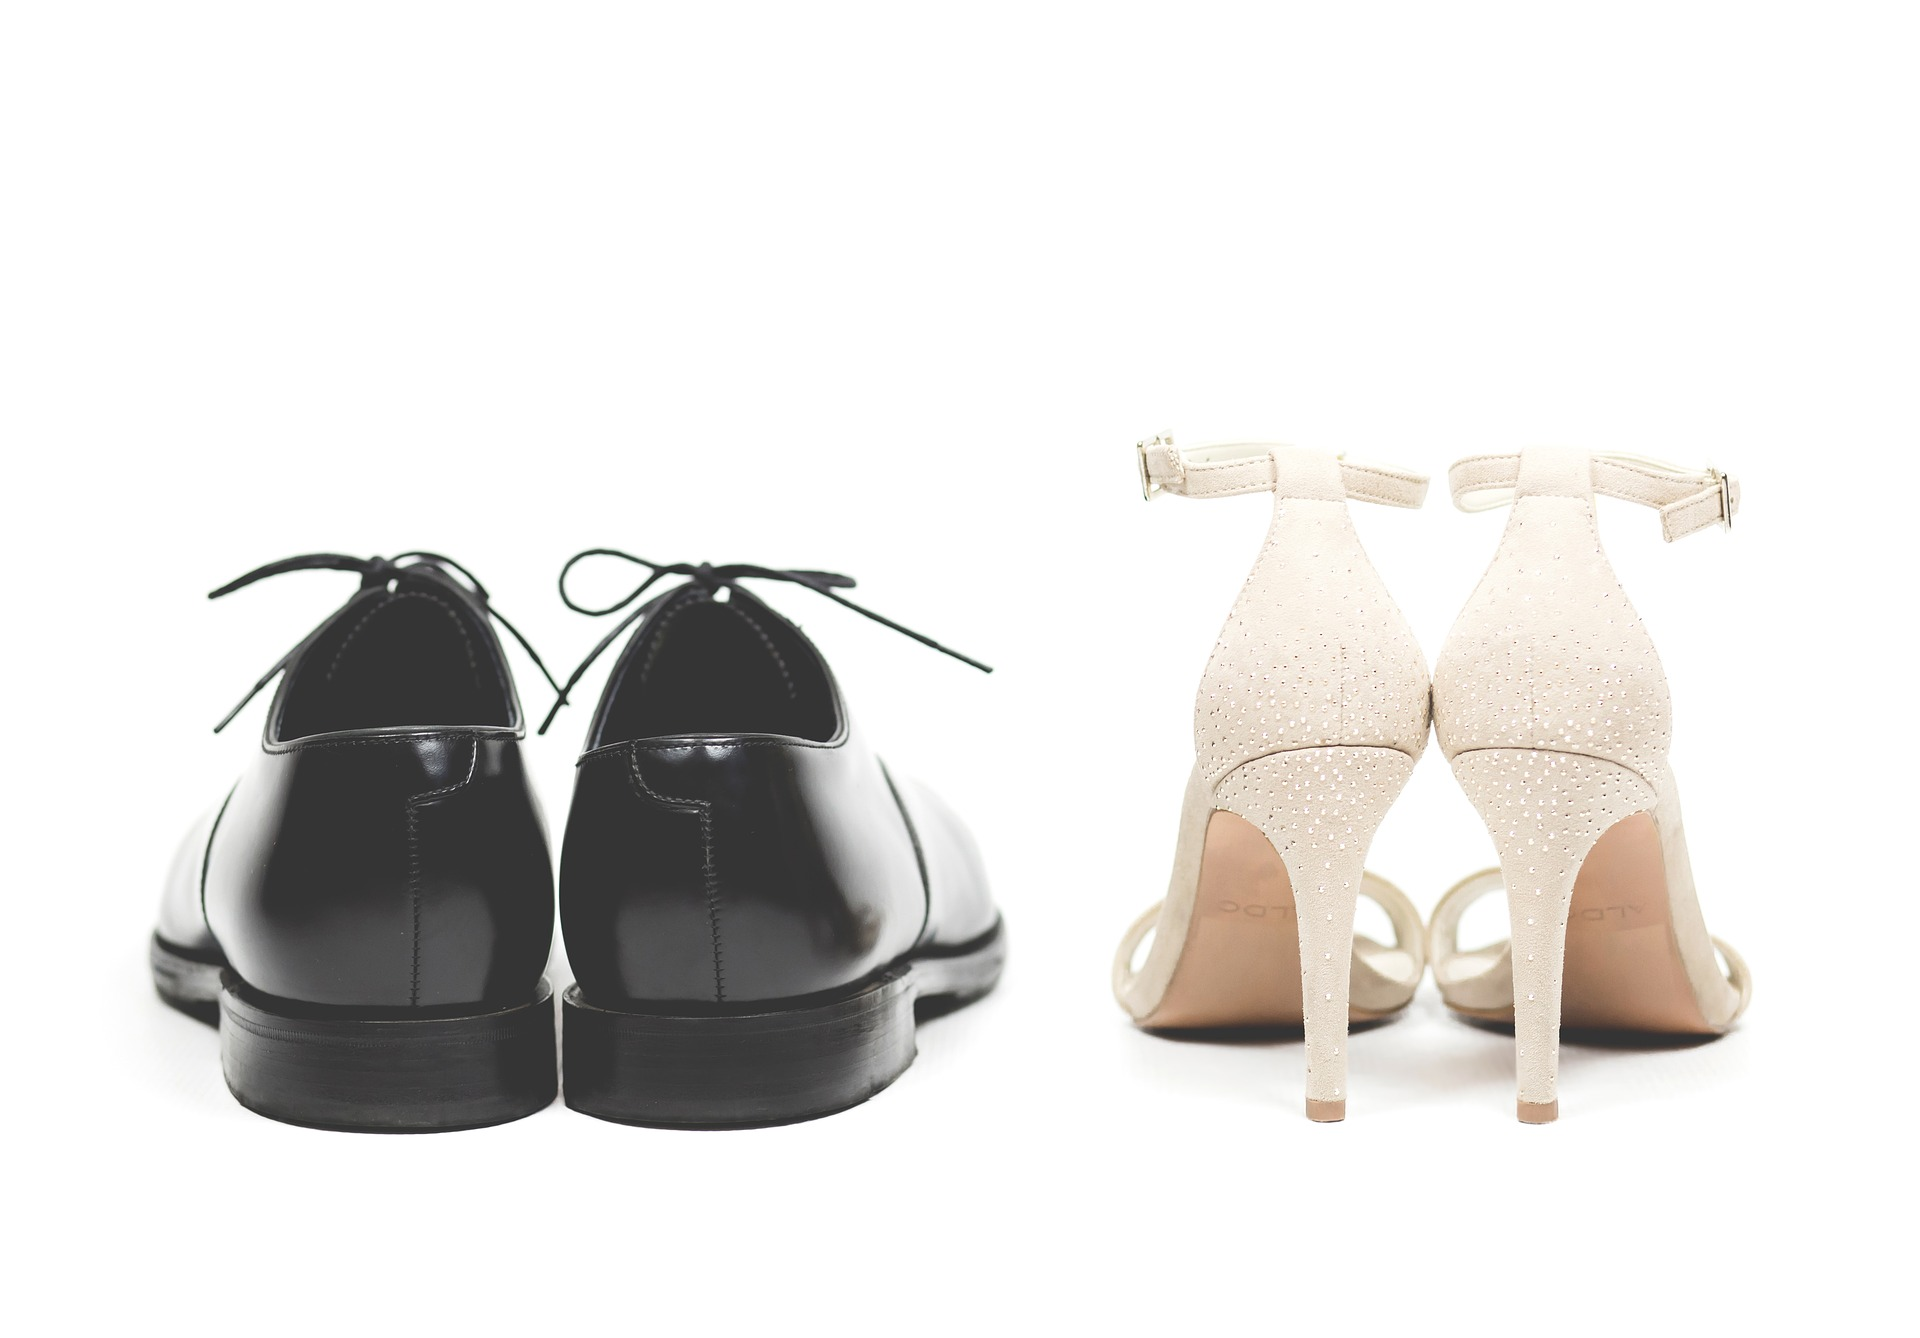 Named the most extravagant shoes of autumn 2011 06/09/2011 74